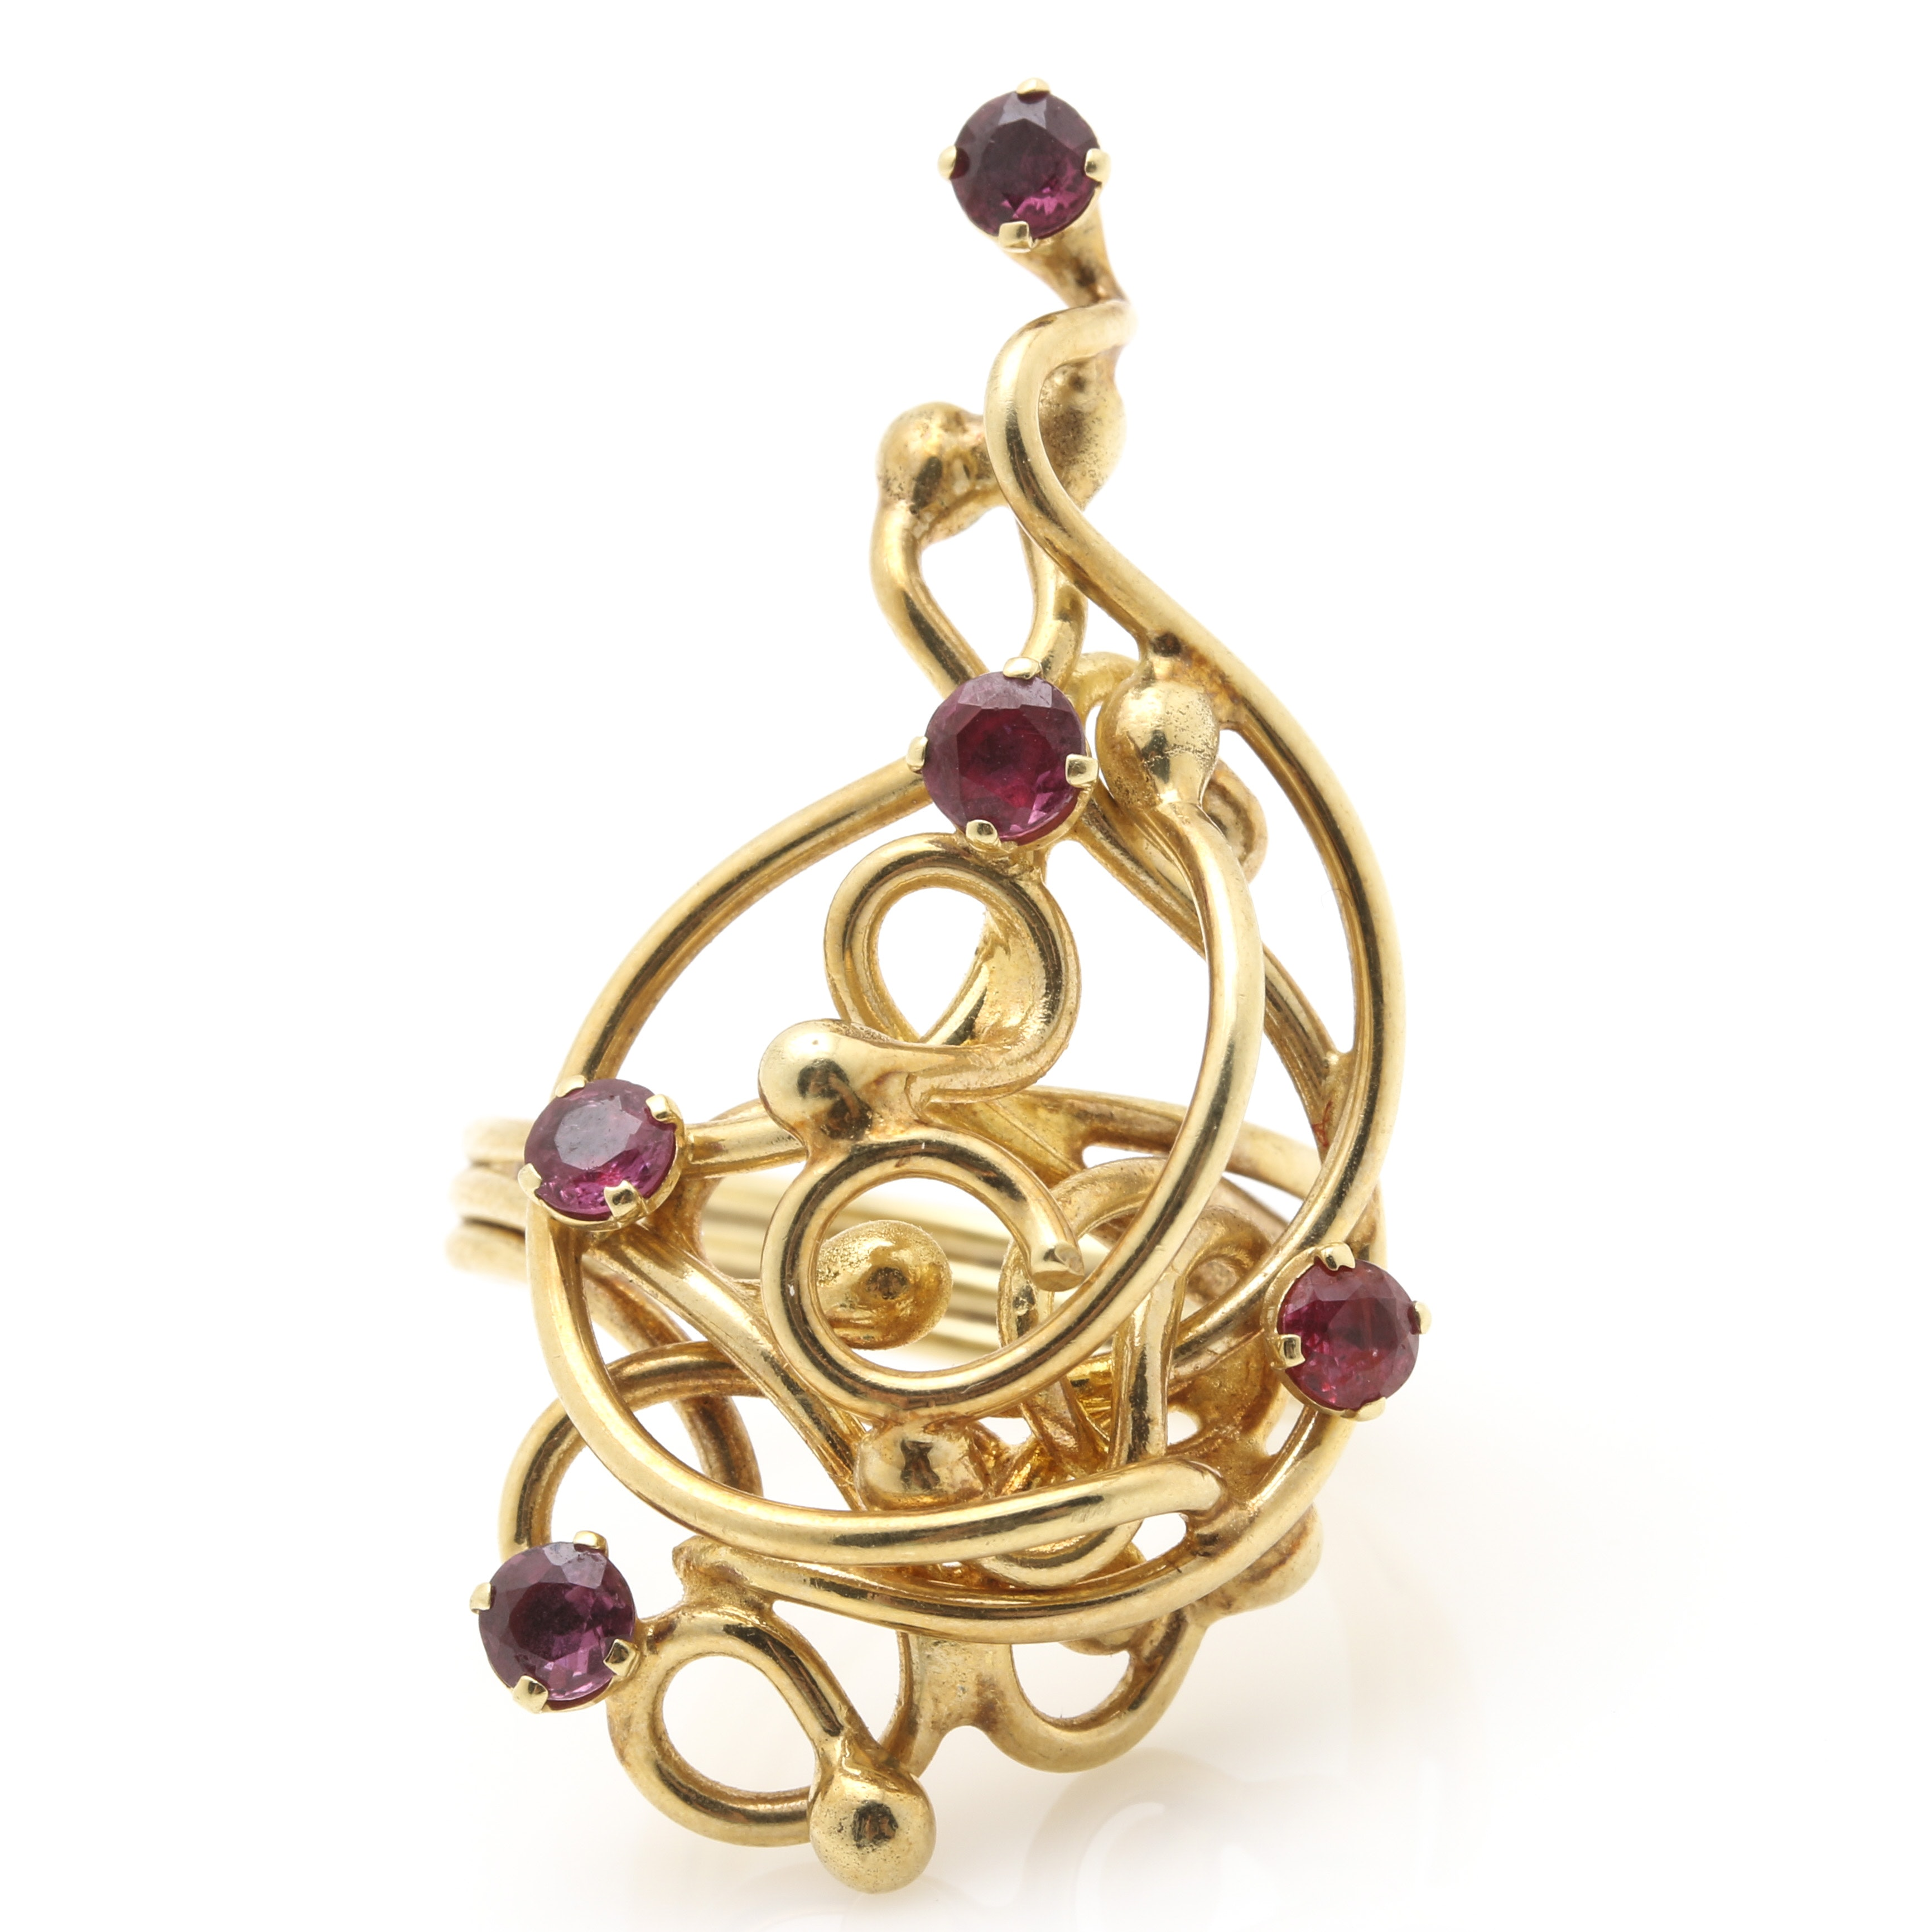 Scrolled 14K Yellow Gold Ruby Ring